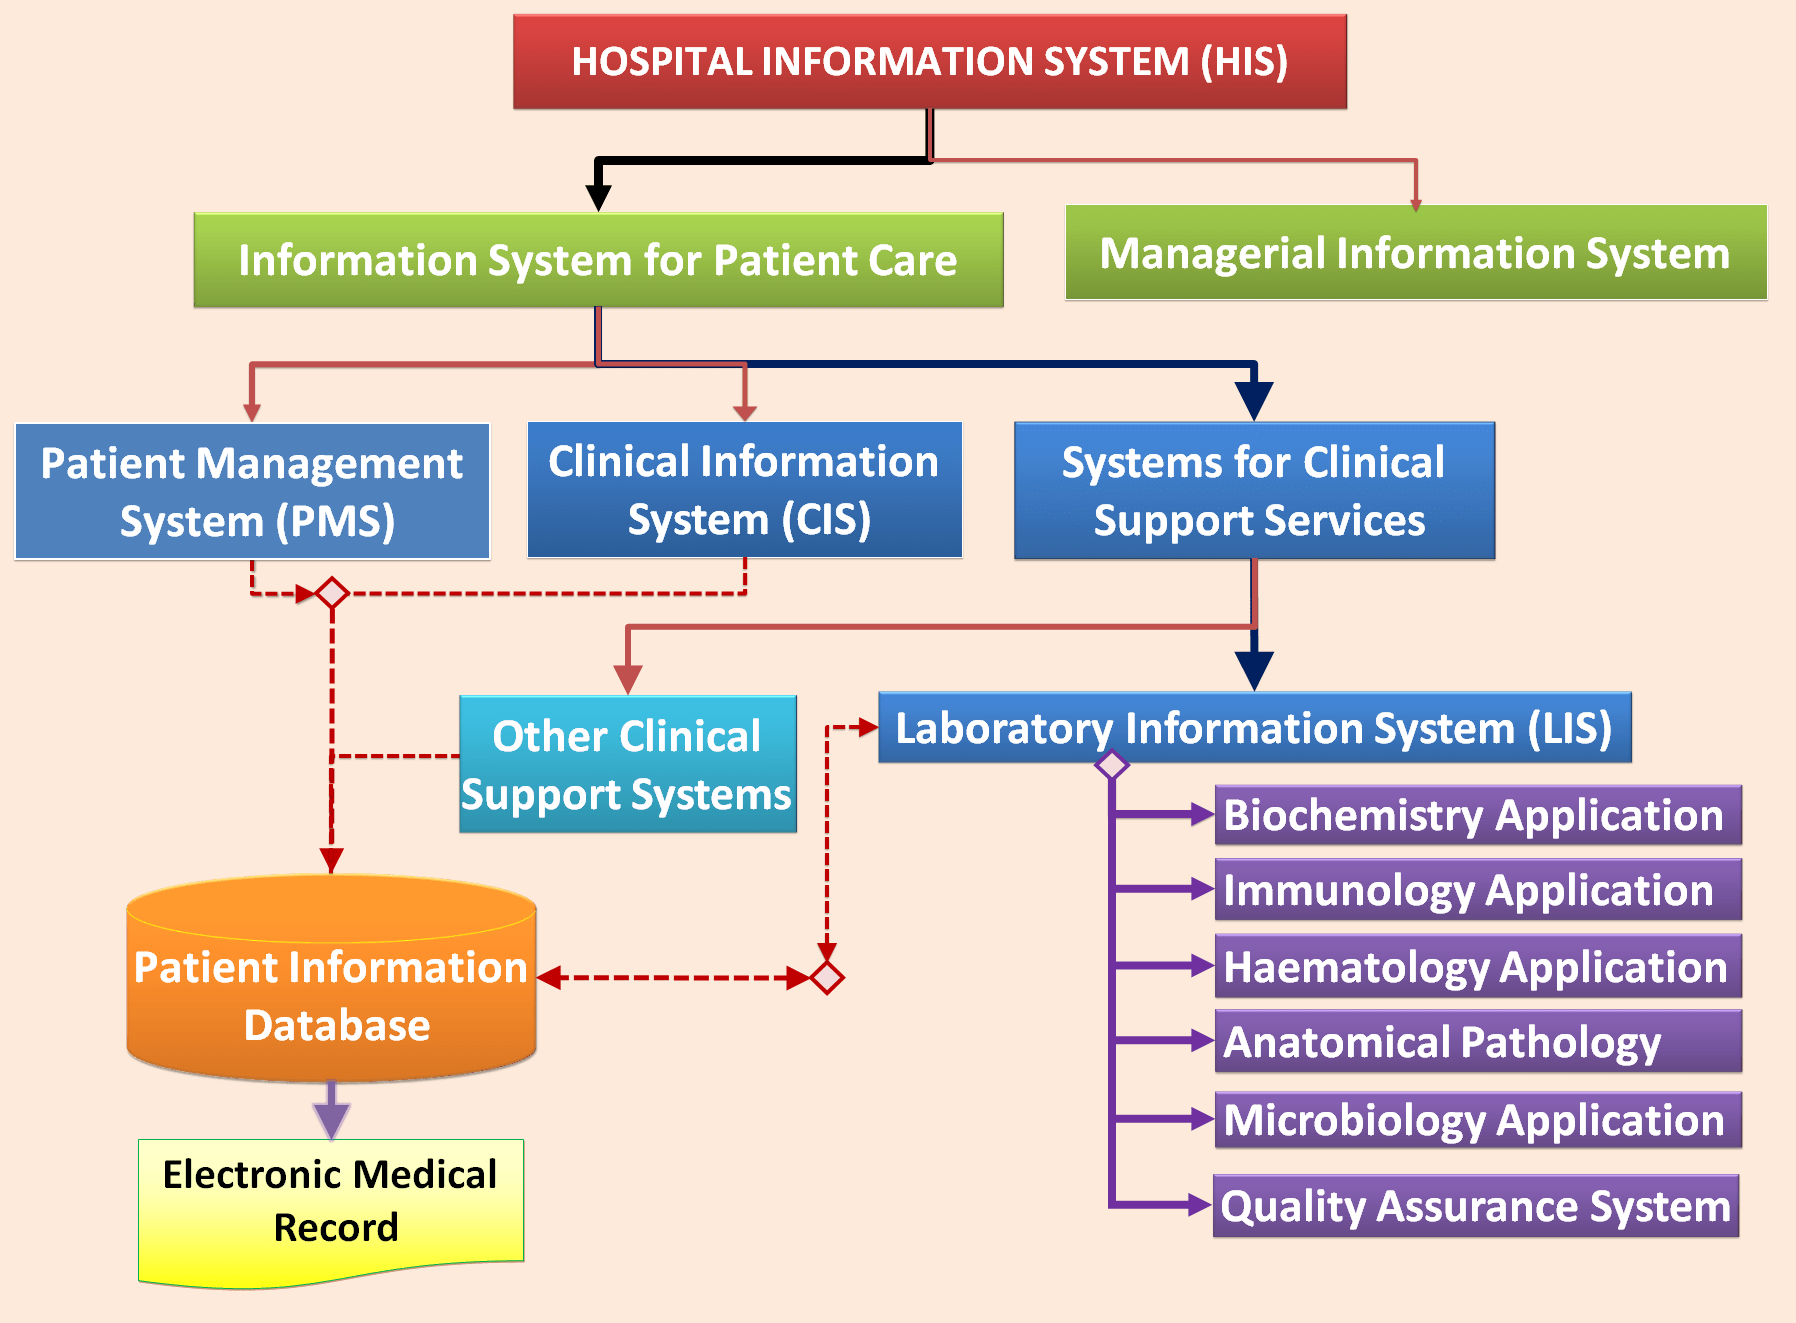 patient management system diagram 2000 toyota 4runner engine laboratory information lis health care service